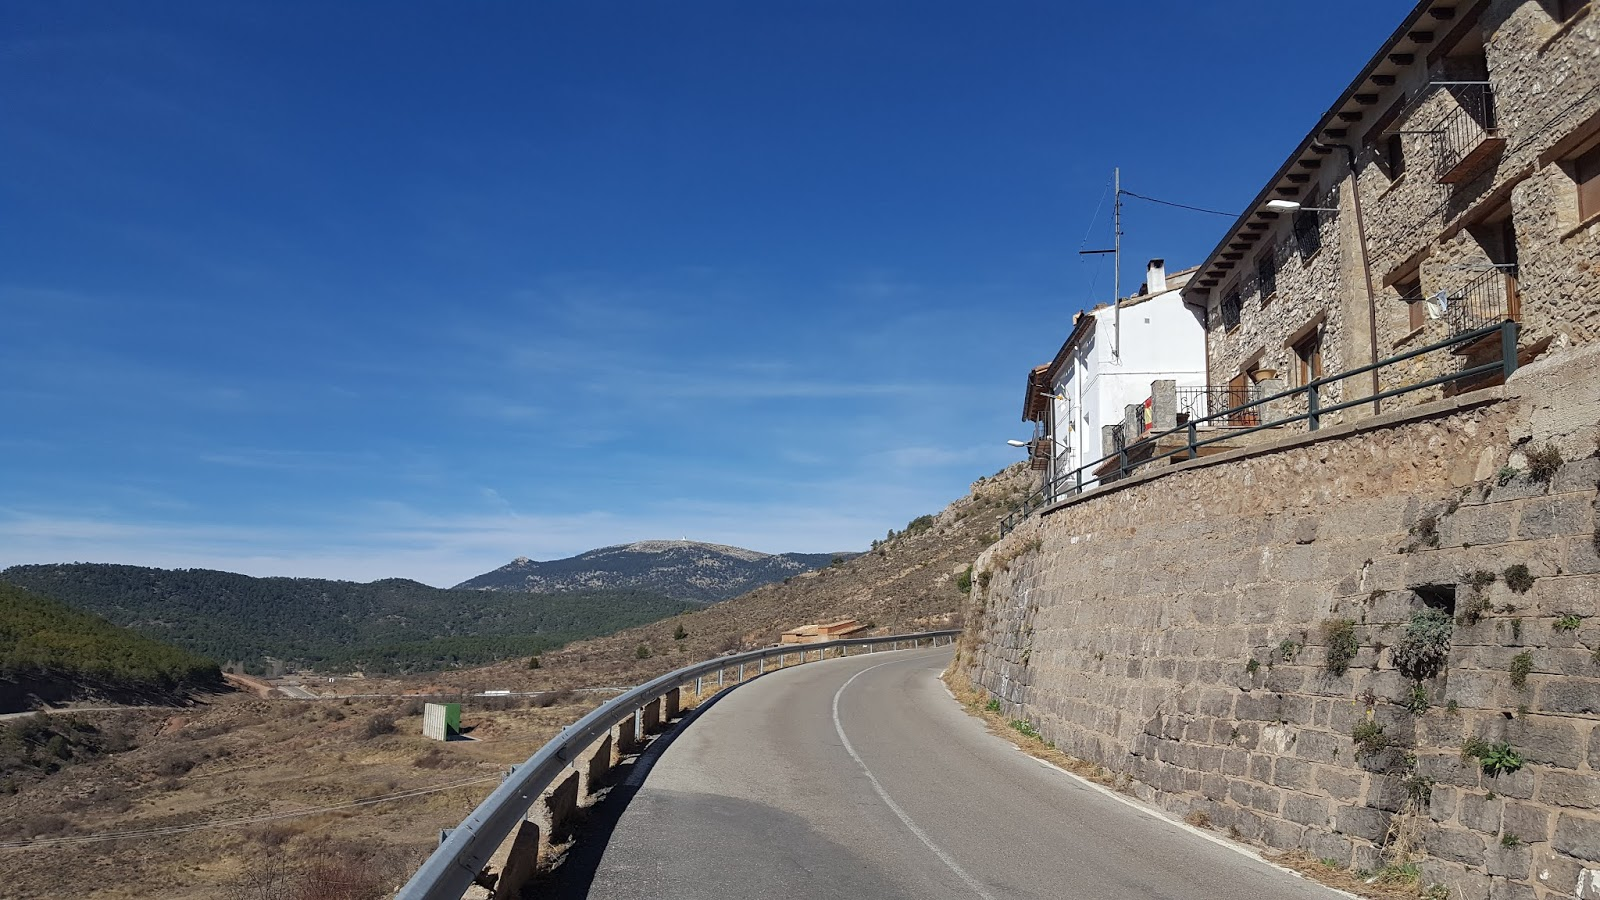 View of the Javalambre Astrophysical Observatory, just over the border of Castrellón in the province of Teruel